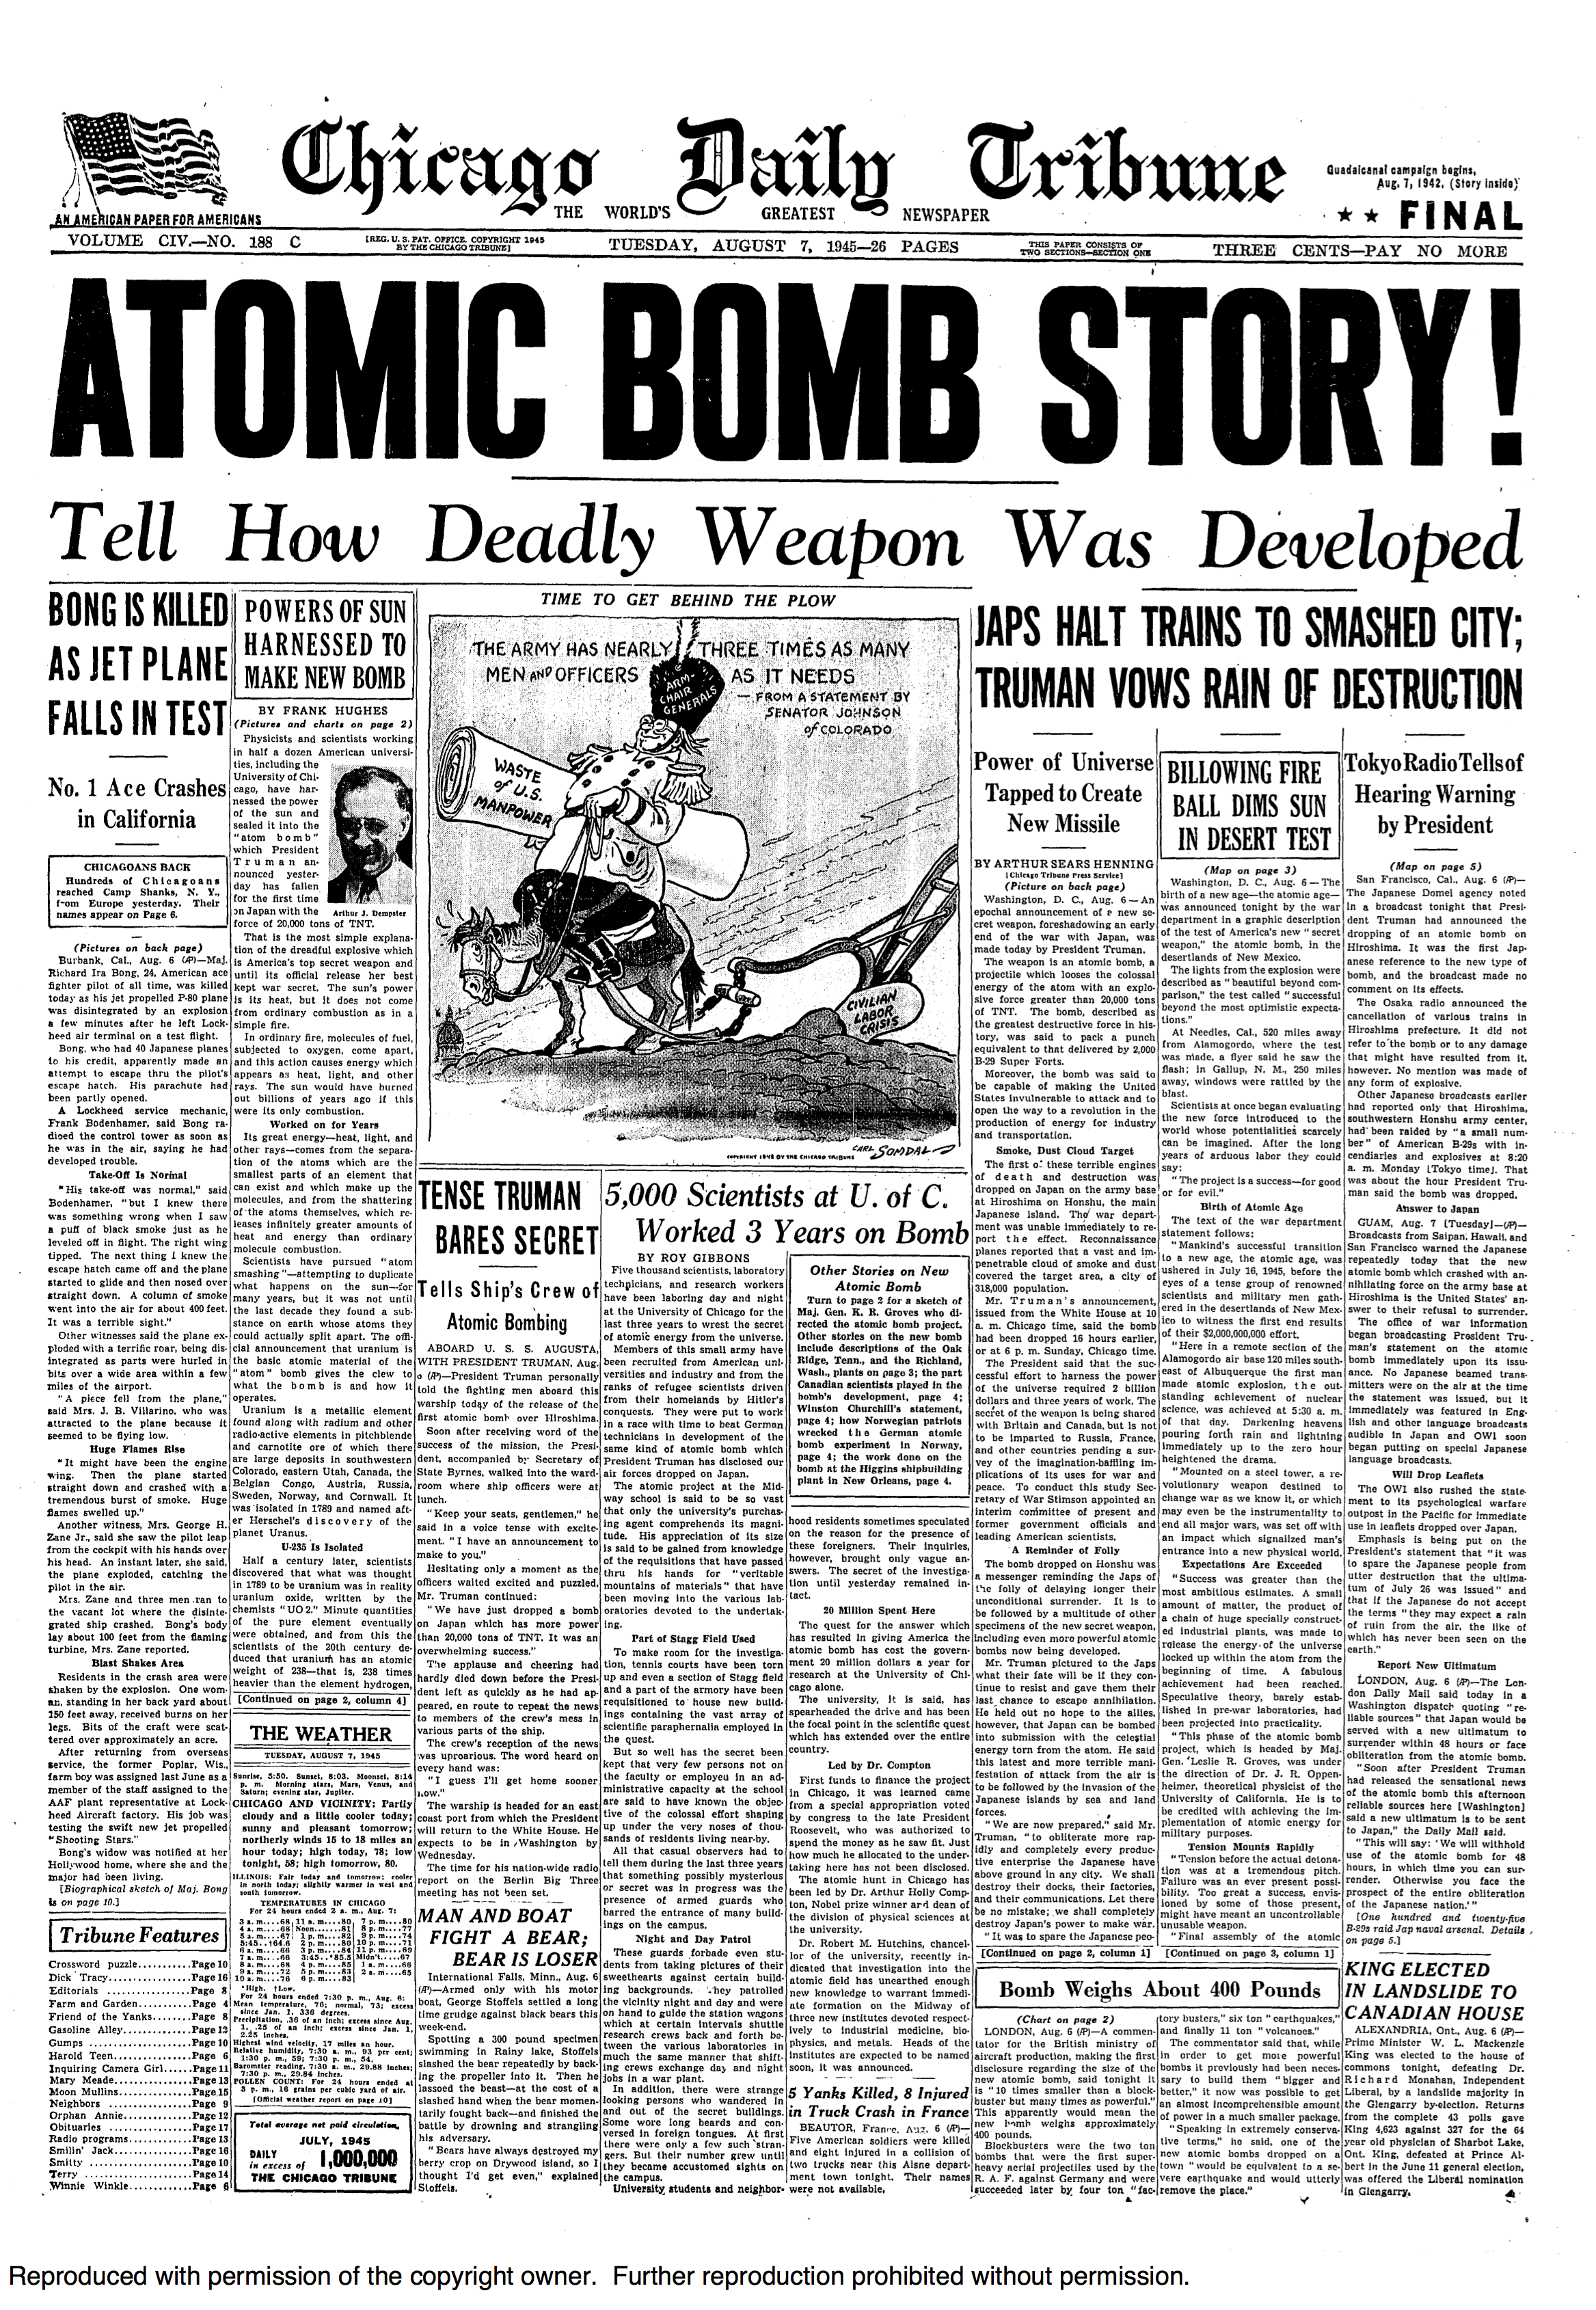 atomic bomb dropped on hiroshima historic front pages atomic bomb dropped on hiroshima 1945